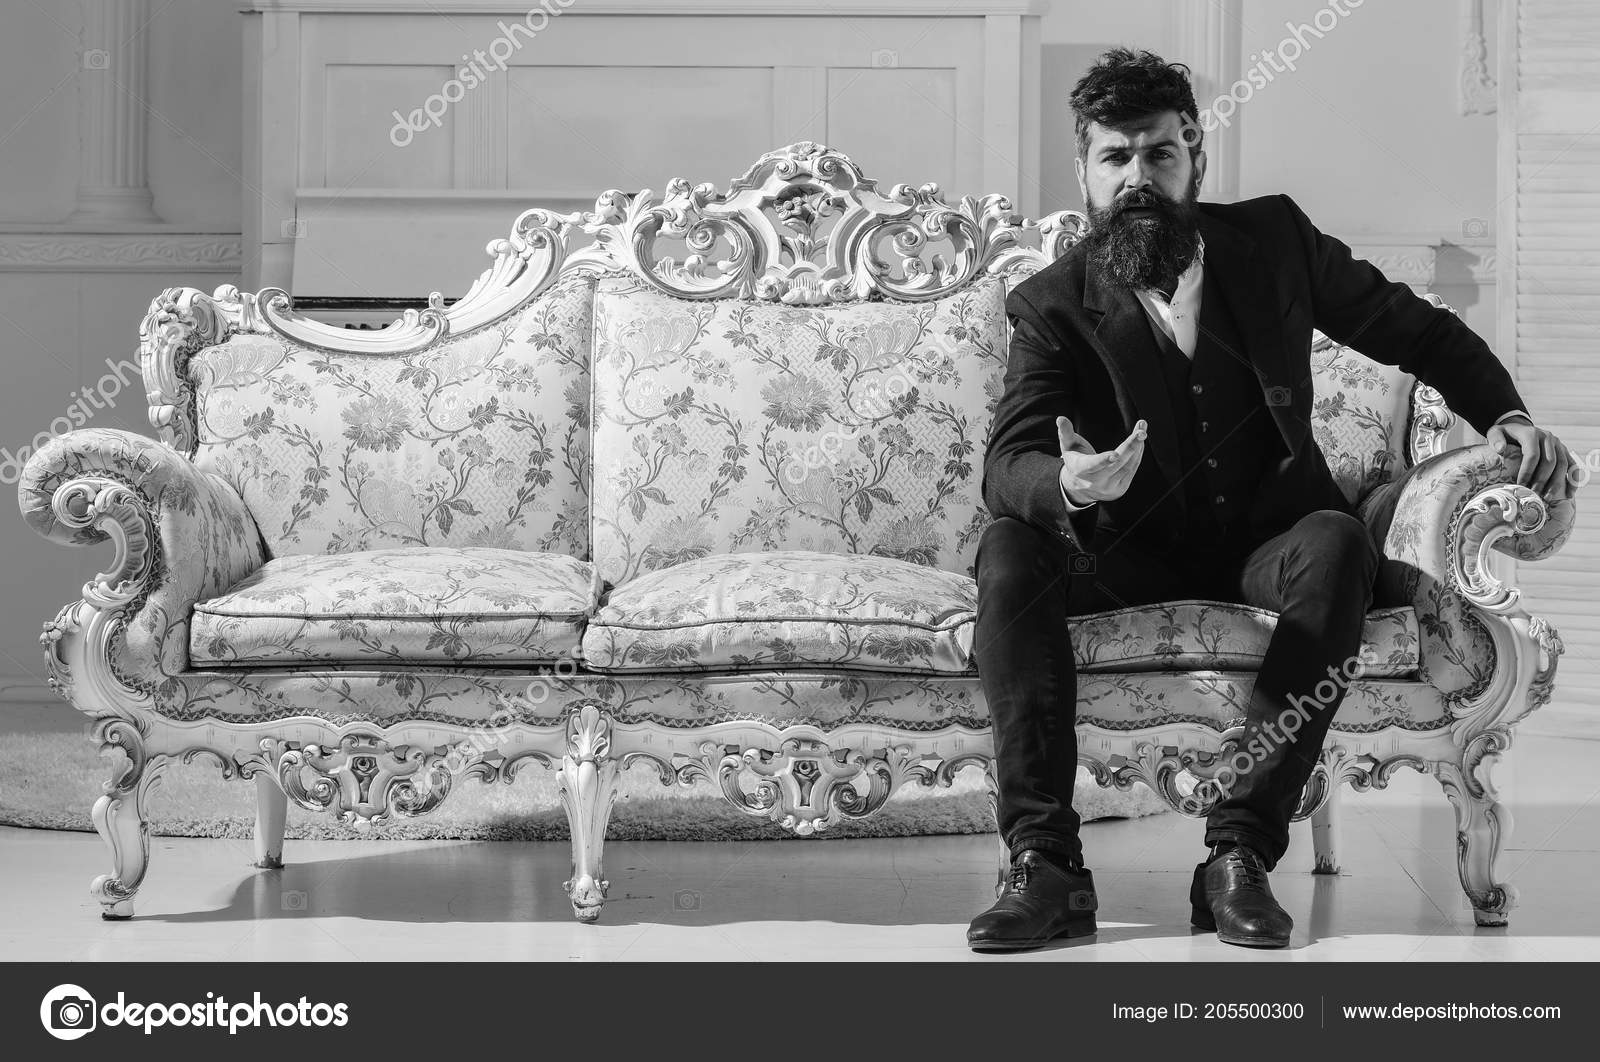 Fashion And Style Concept. Man With Beard And Mustache Wearing Fashionable  Classic Suit, Sits On Old Fashioned Couch Or Sofa U2014 Photo ...